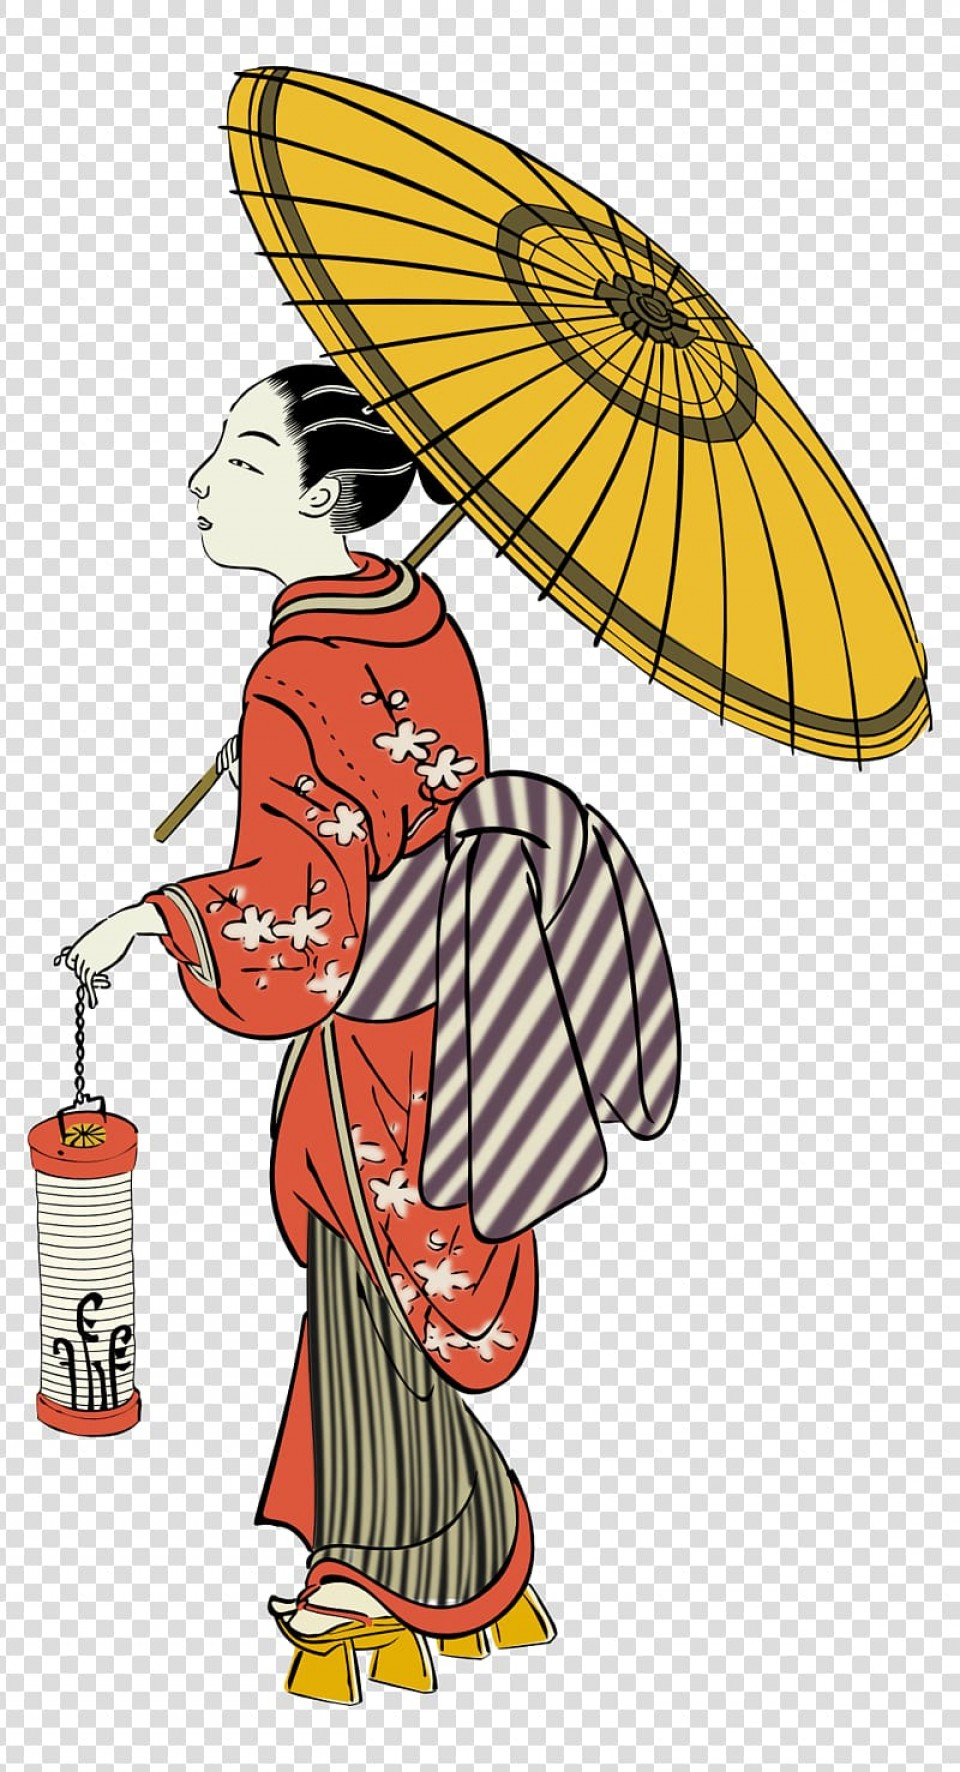 Chinese Geisha Pin Up Vector Art: Free Transparent Background Png Clipart Bqoxo